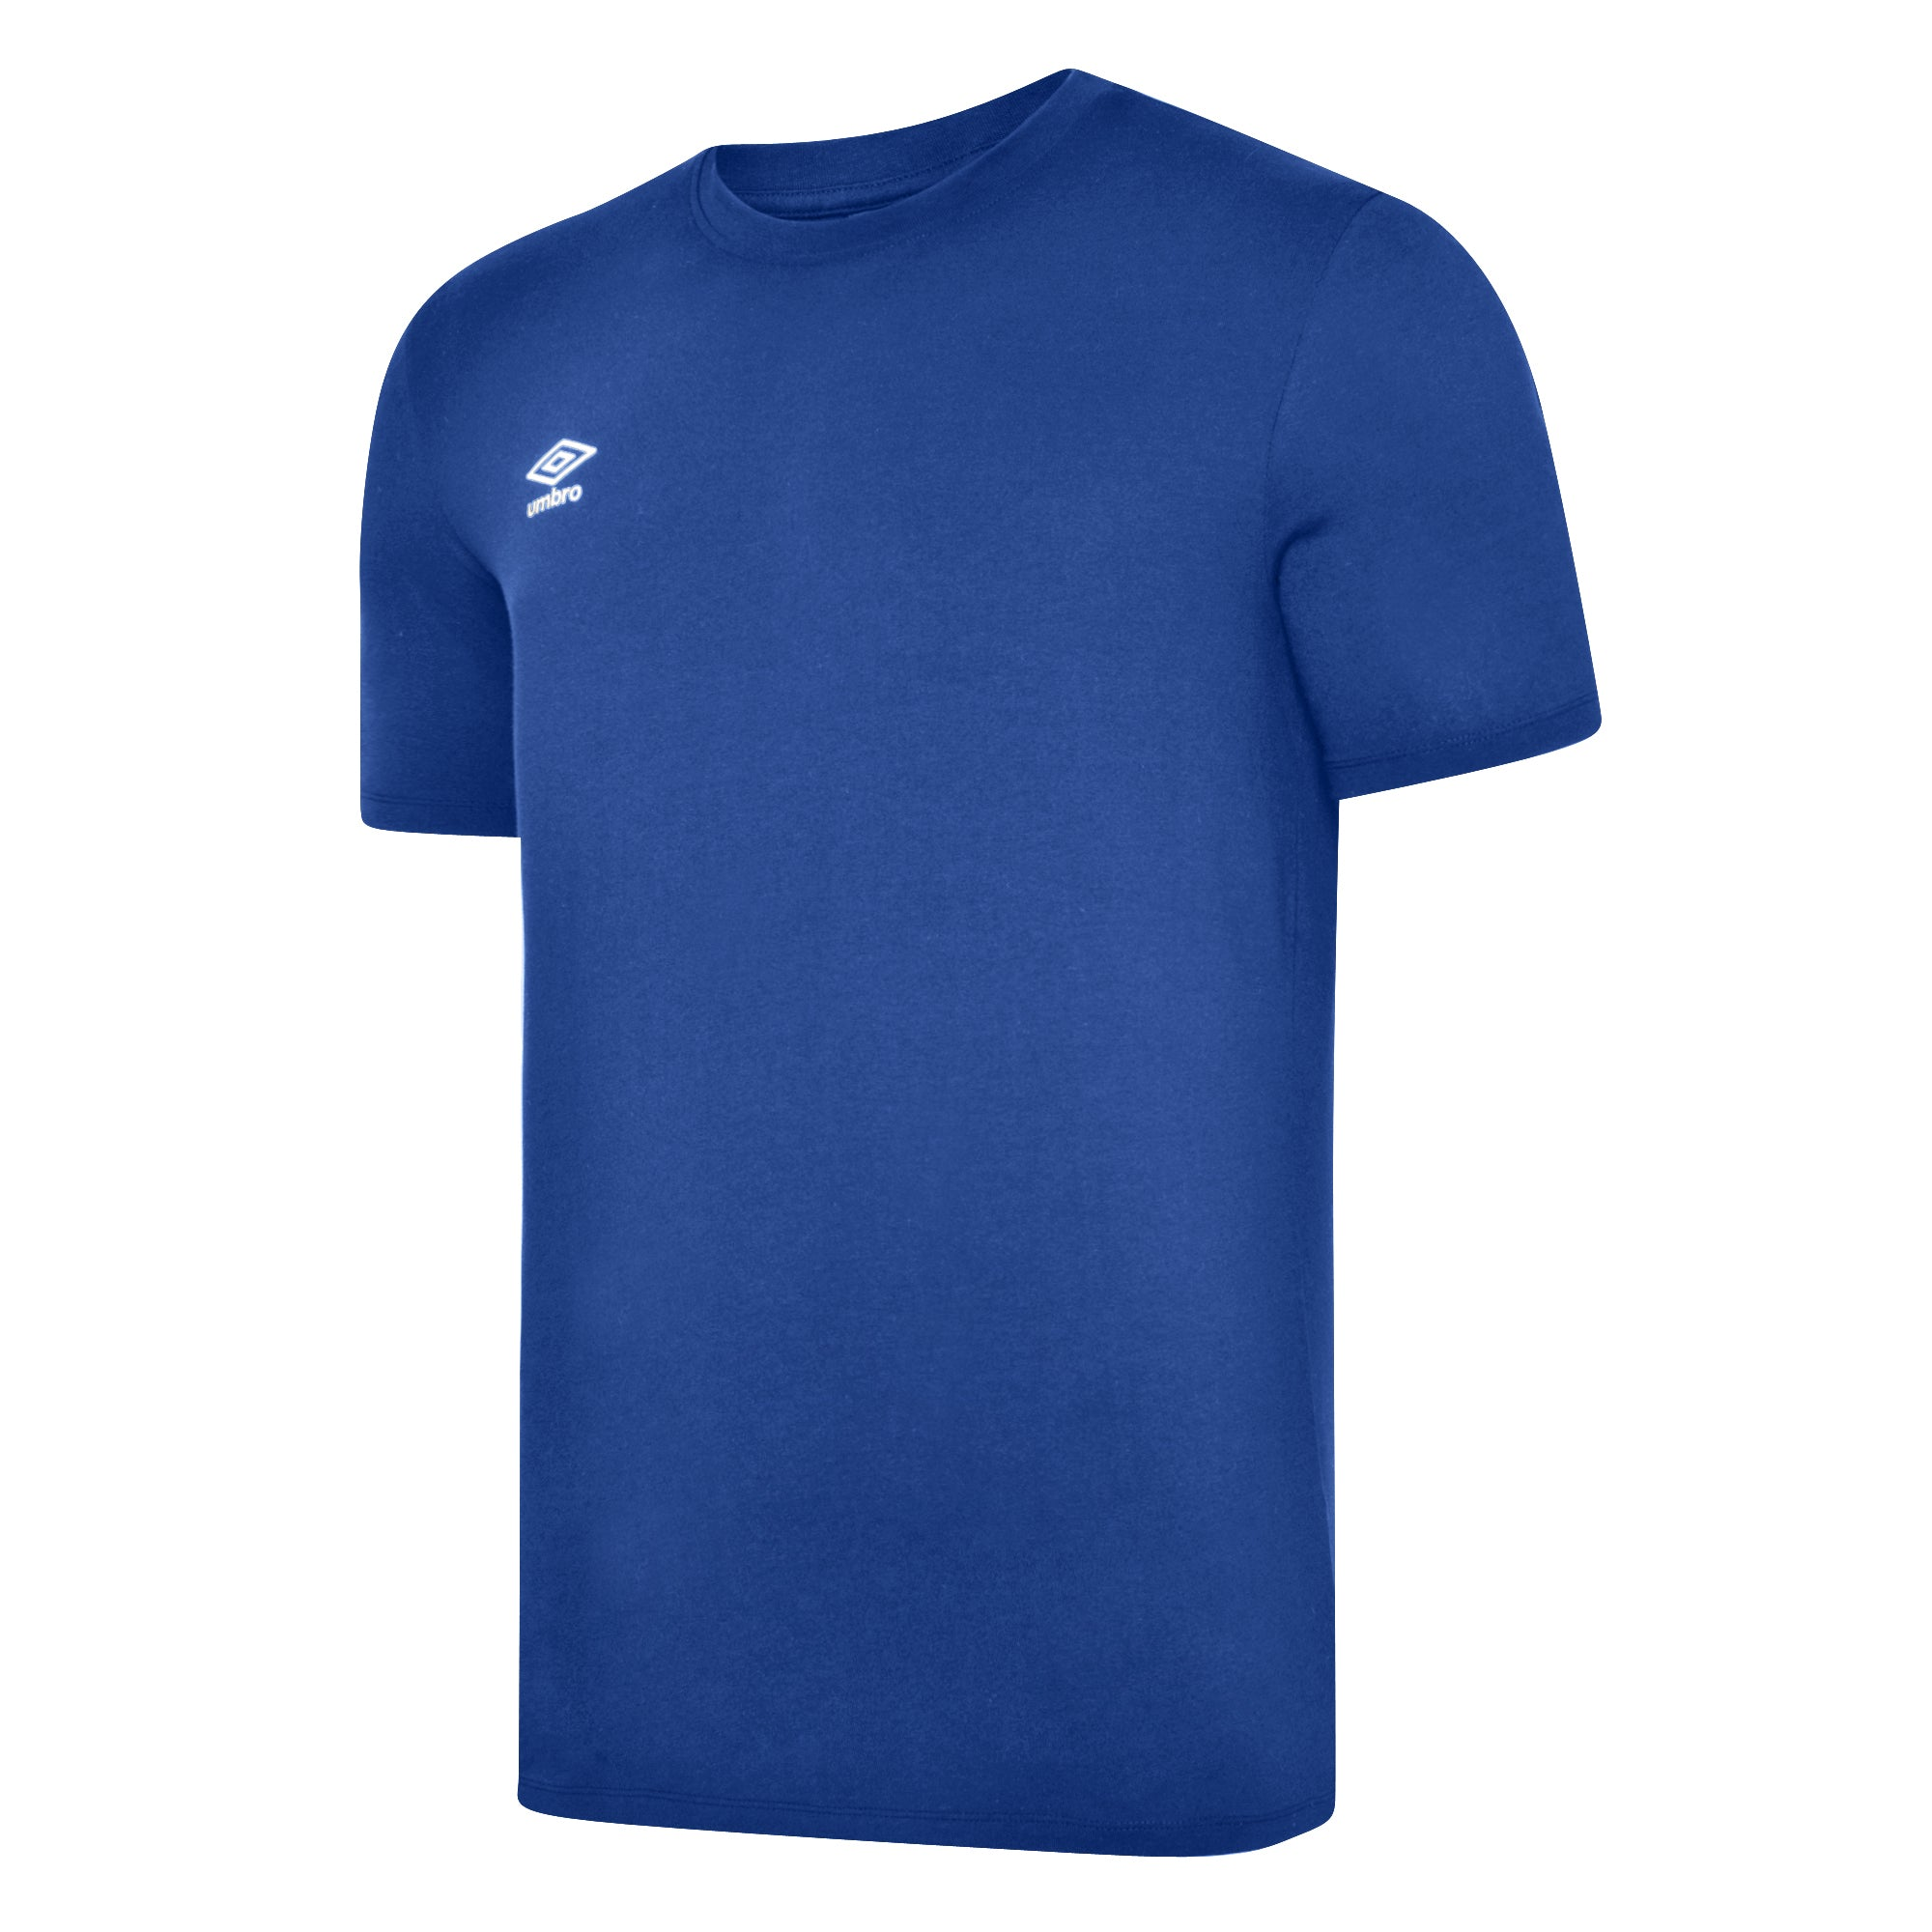 Umbro Club Leisure Crew Tee - TW Royal/White